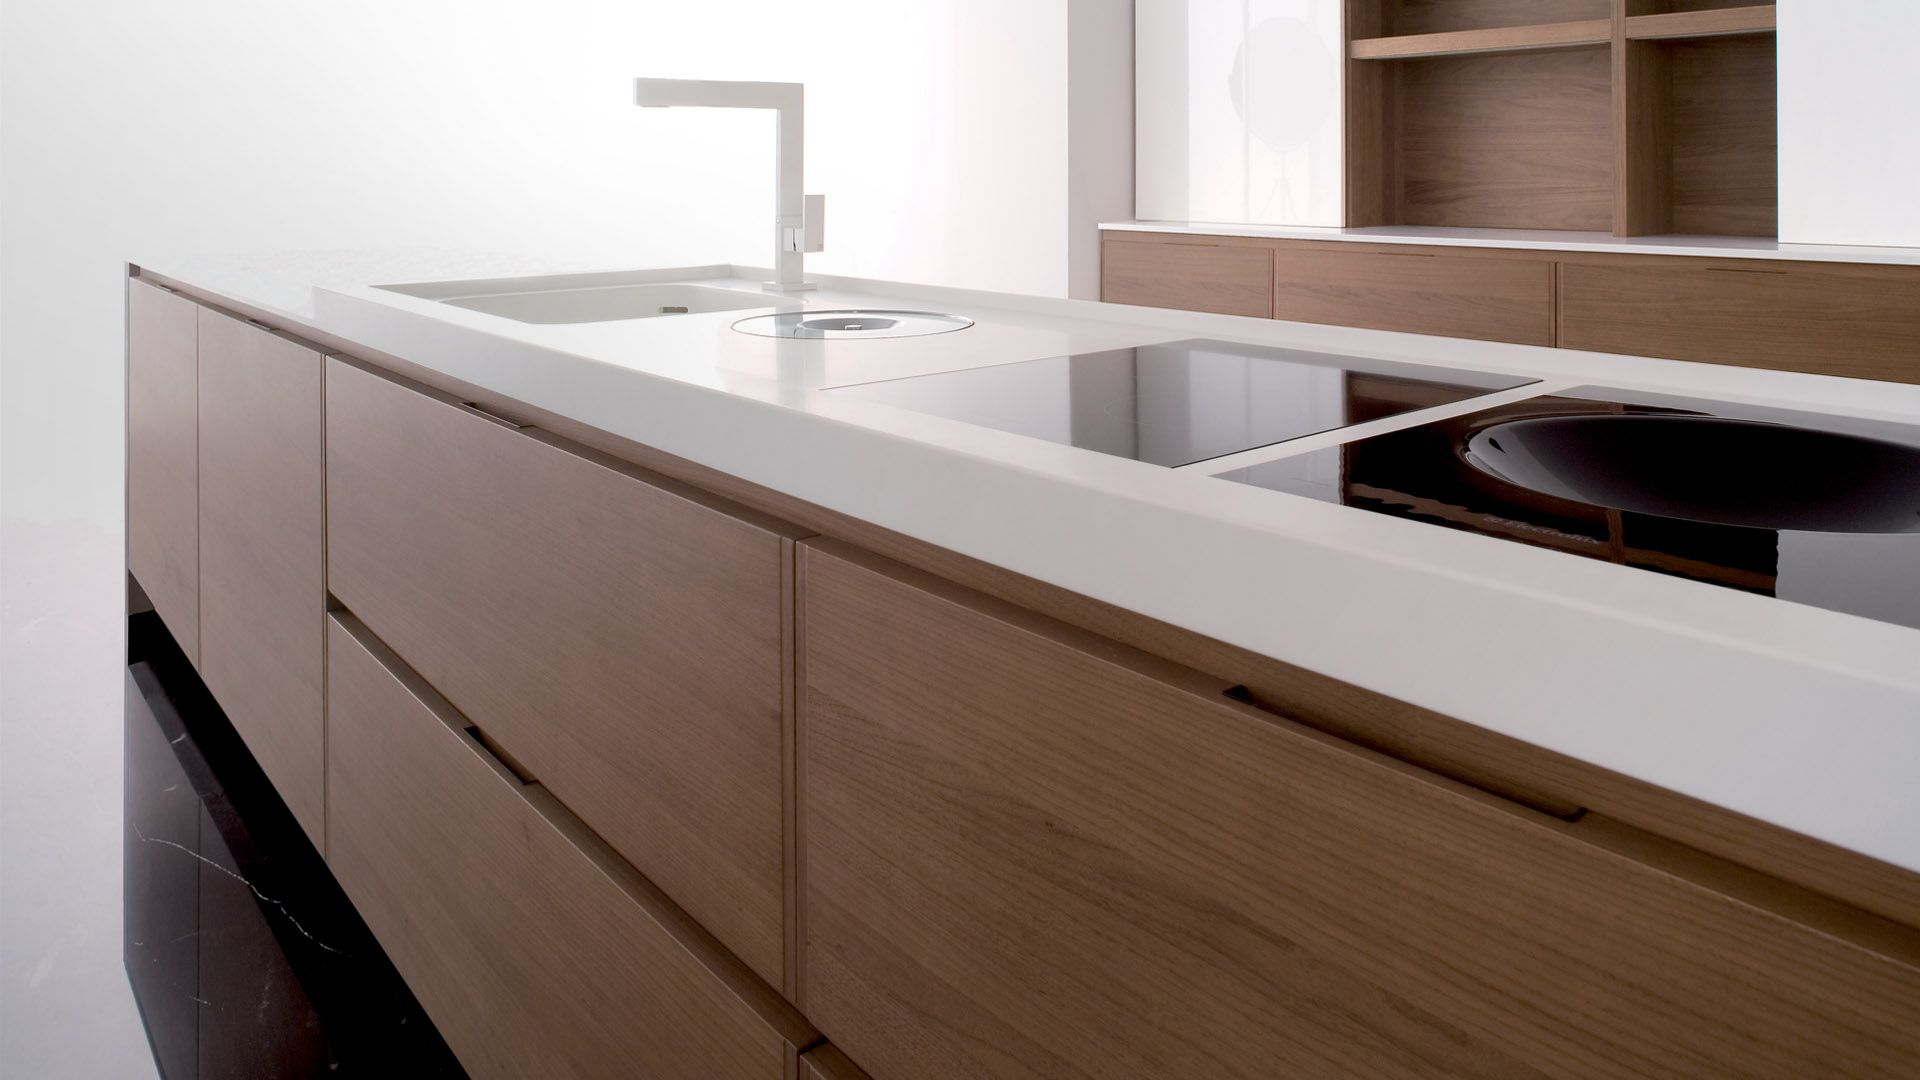 fancy luxurious kitchen design with glacier white corian On style kitchen countertops